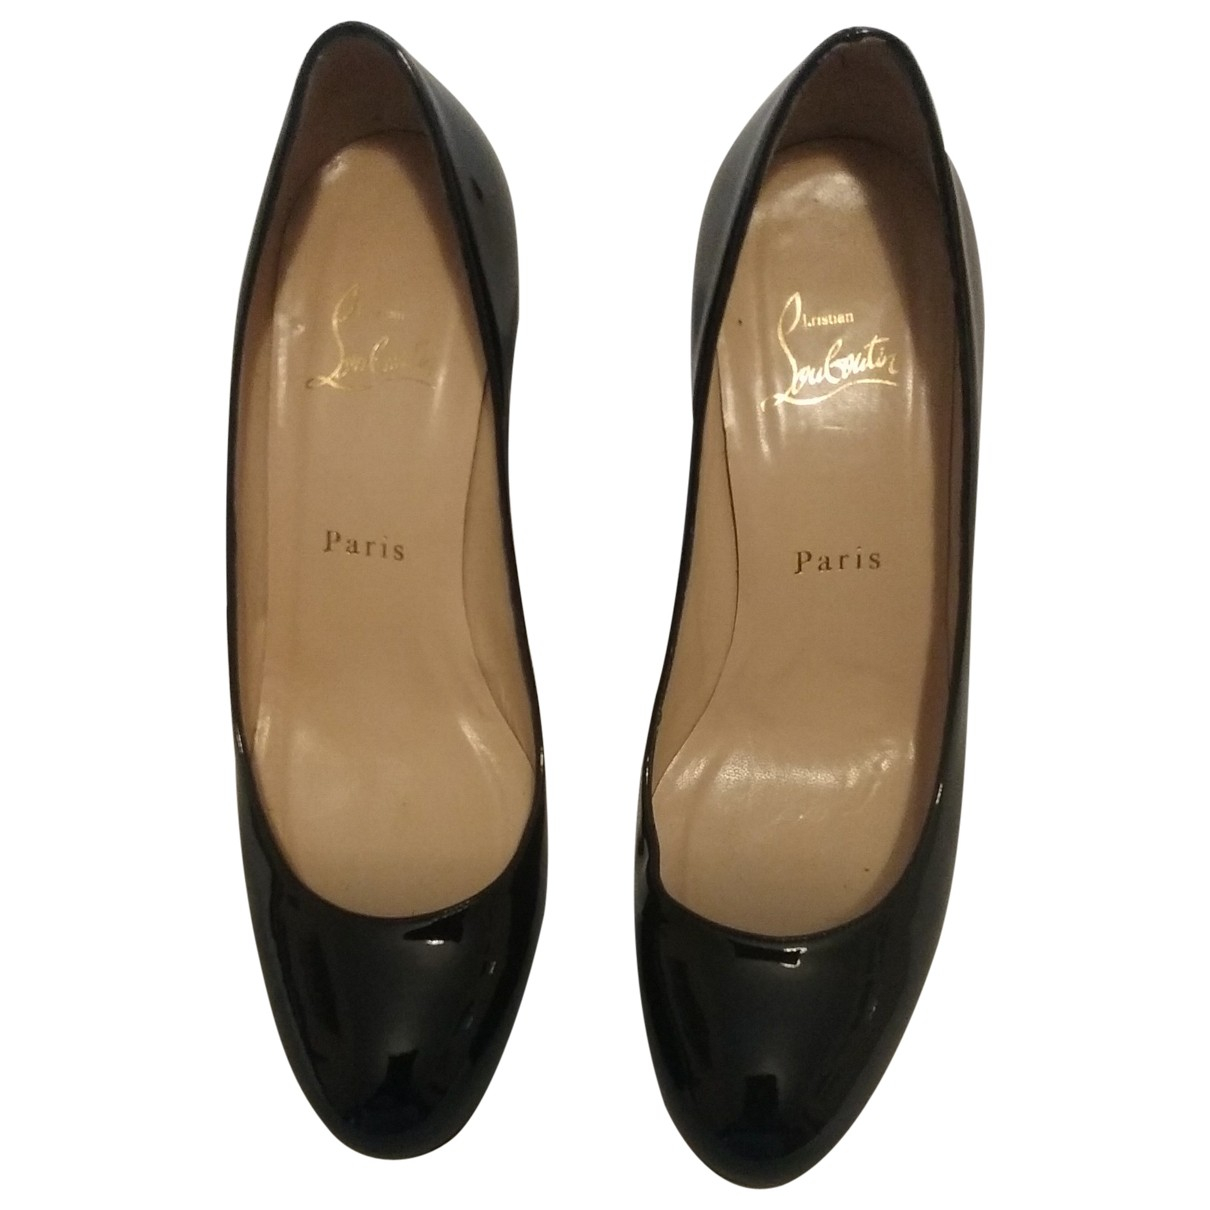 Christian Louboutin Simple pump Black Patent leather Heels for Women 38 EU